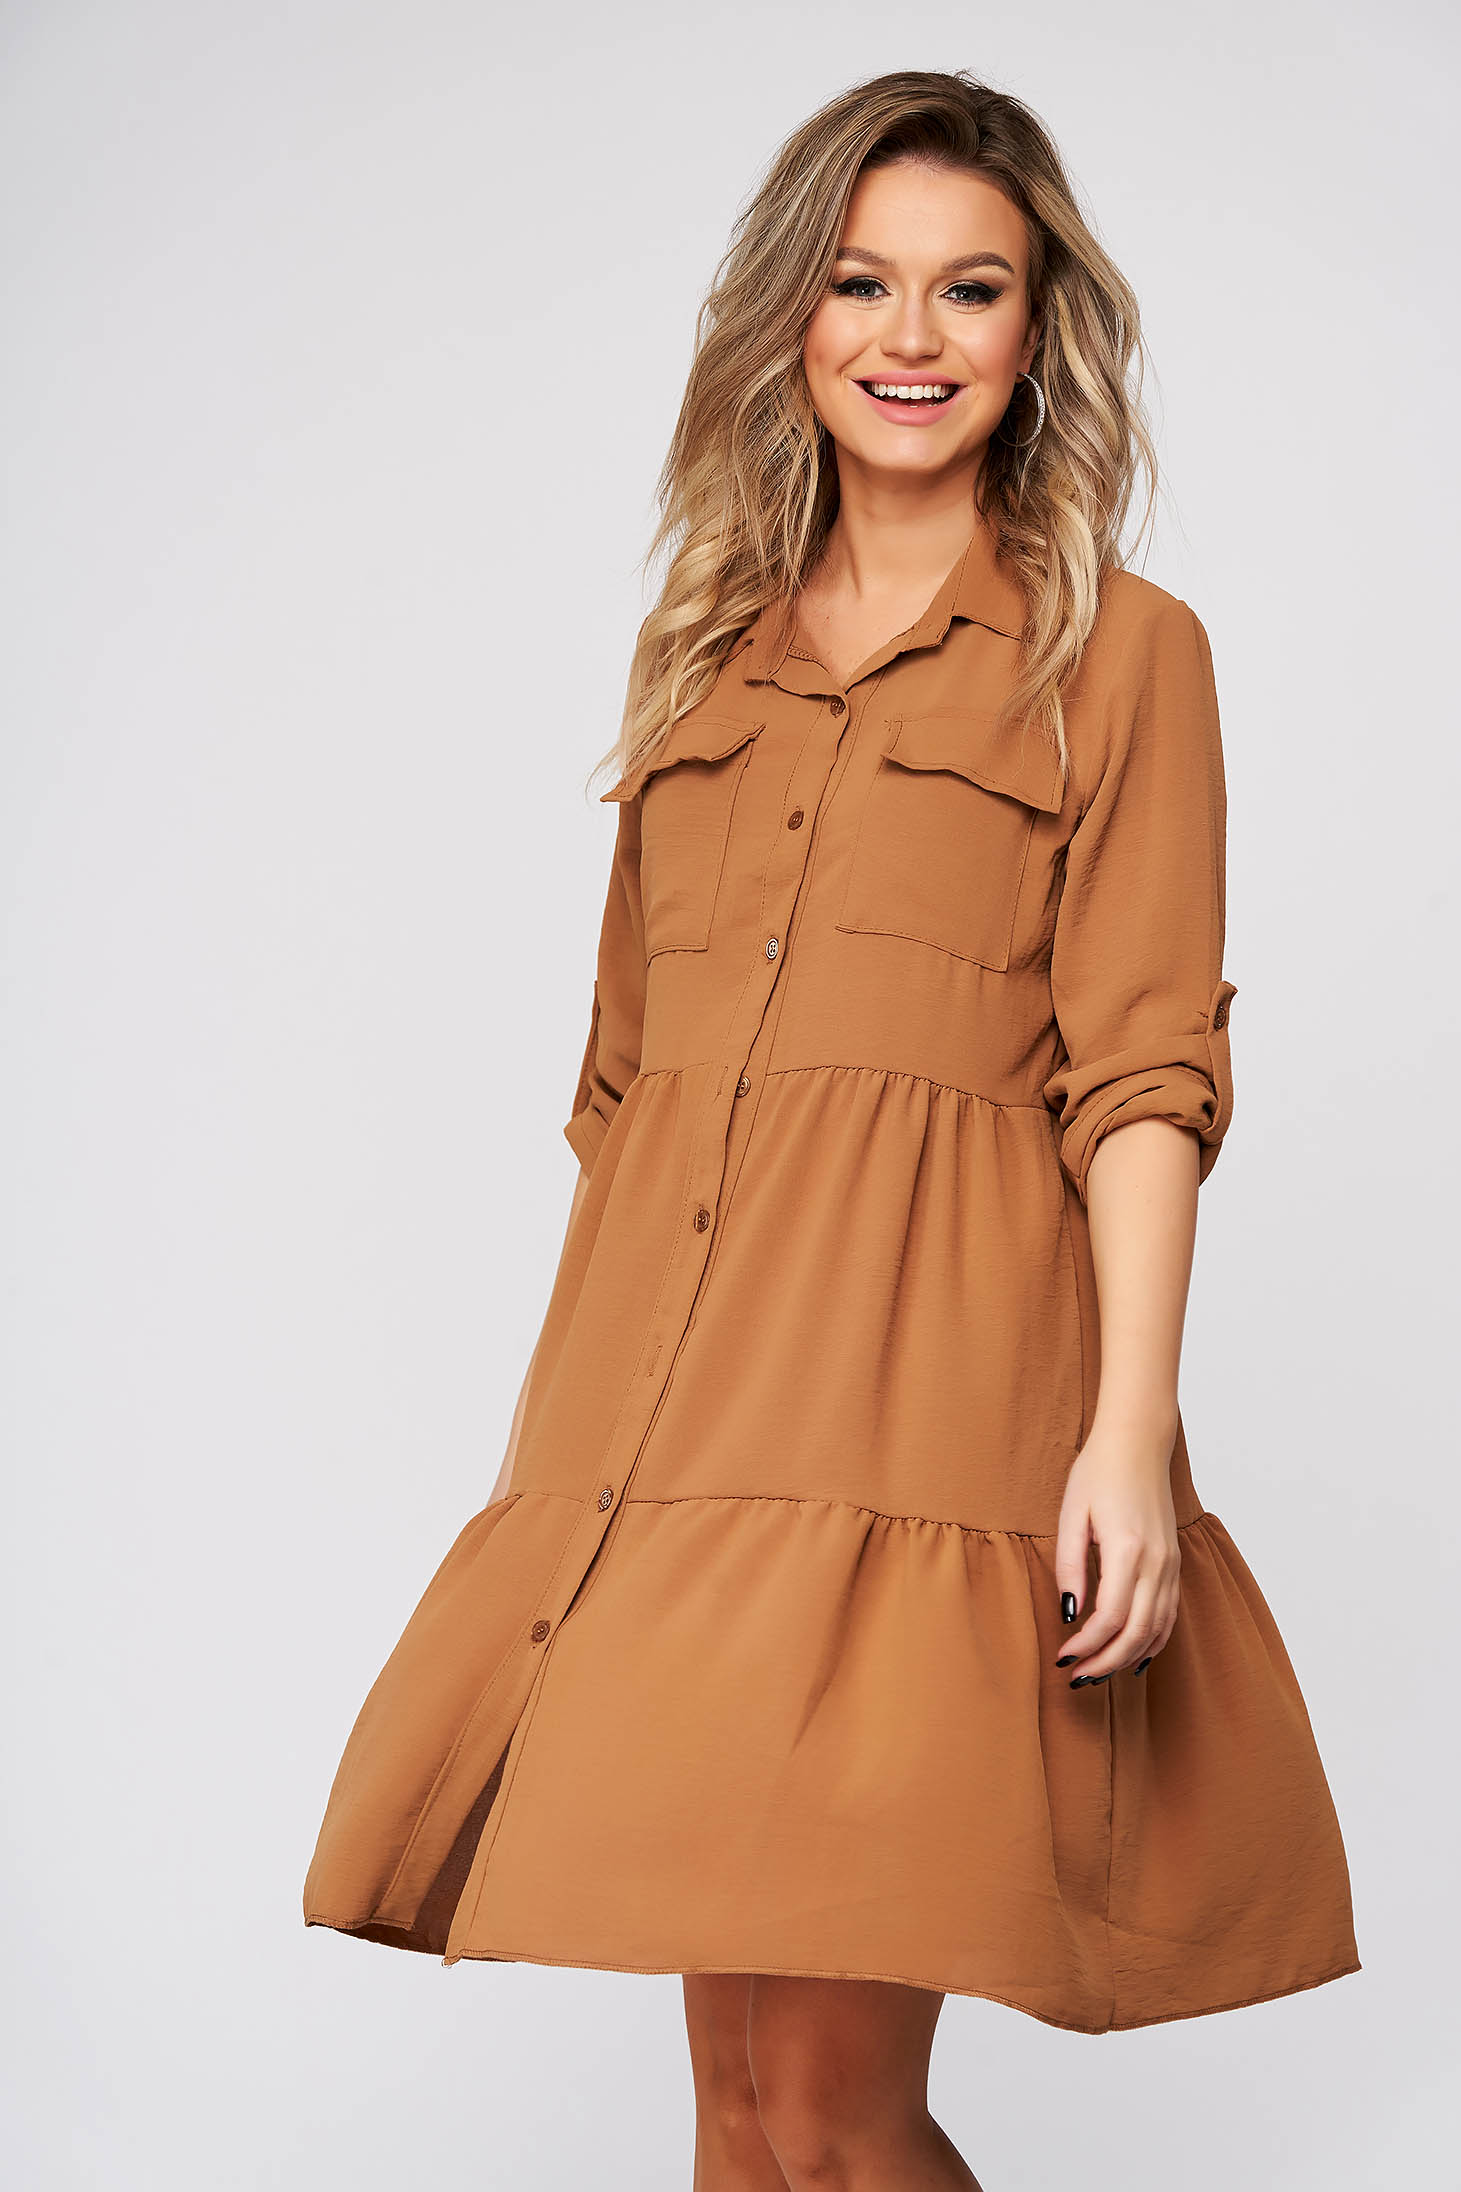 Brown dress daily flared 3/4 sleeve thin fabric